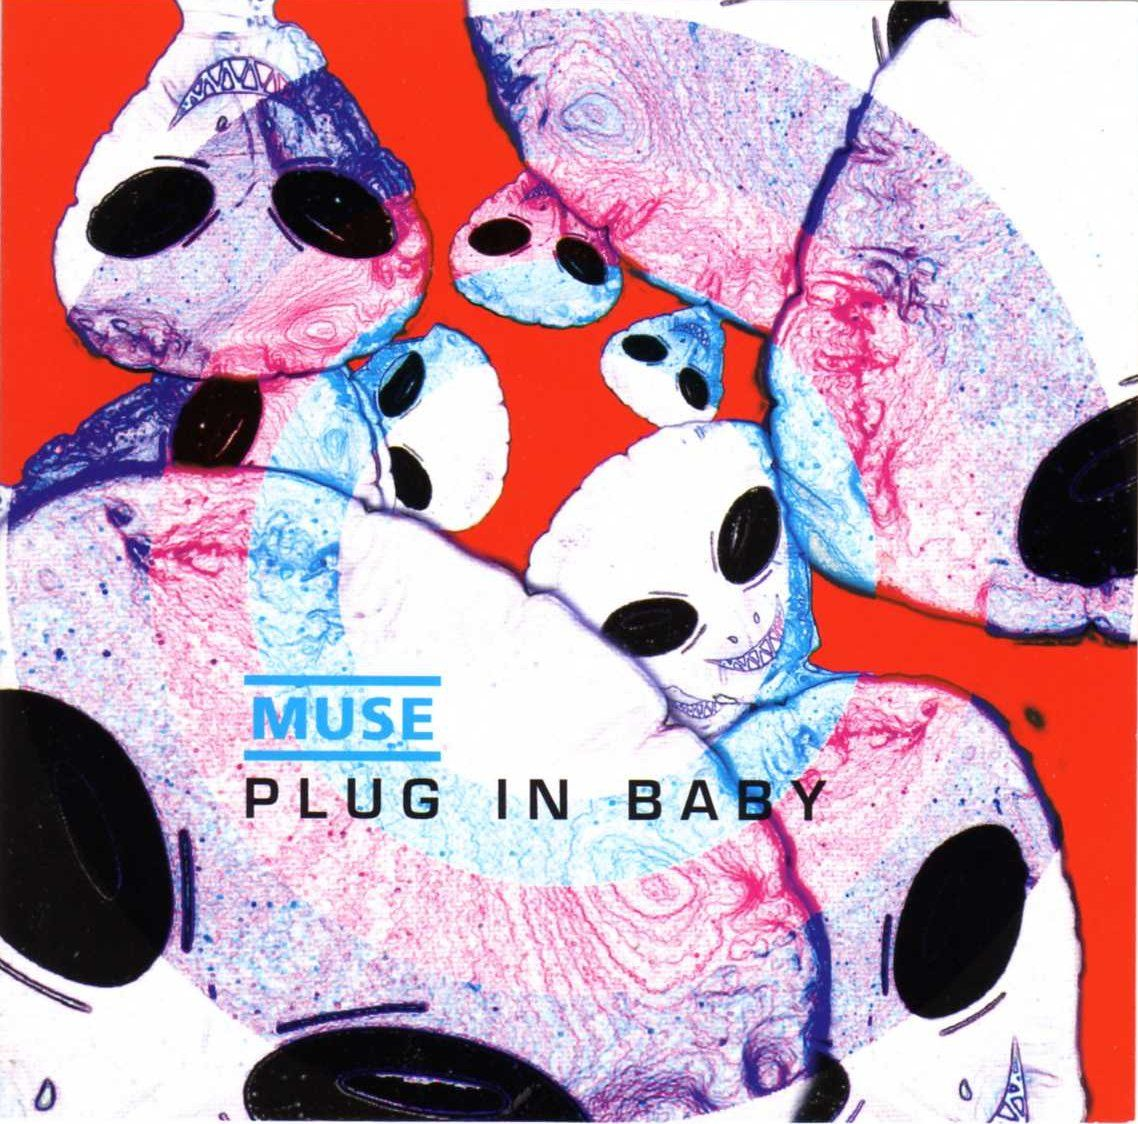 Muse - Plug In Baby Single - 2001